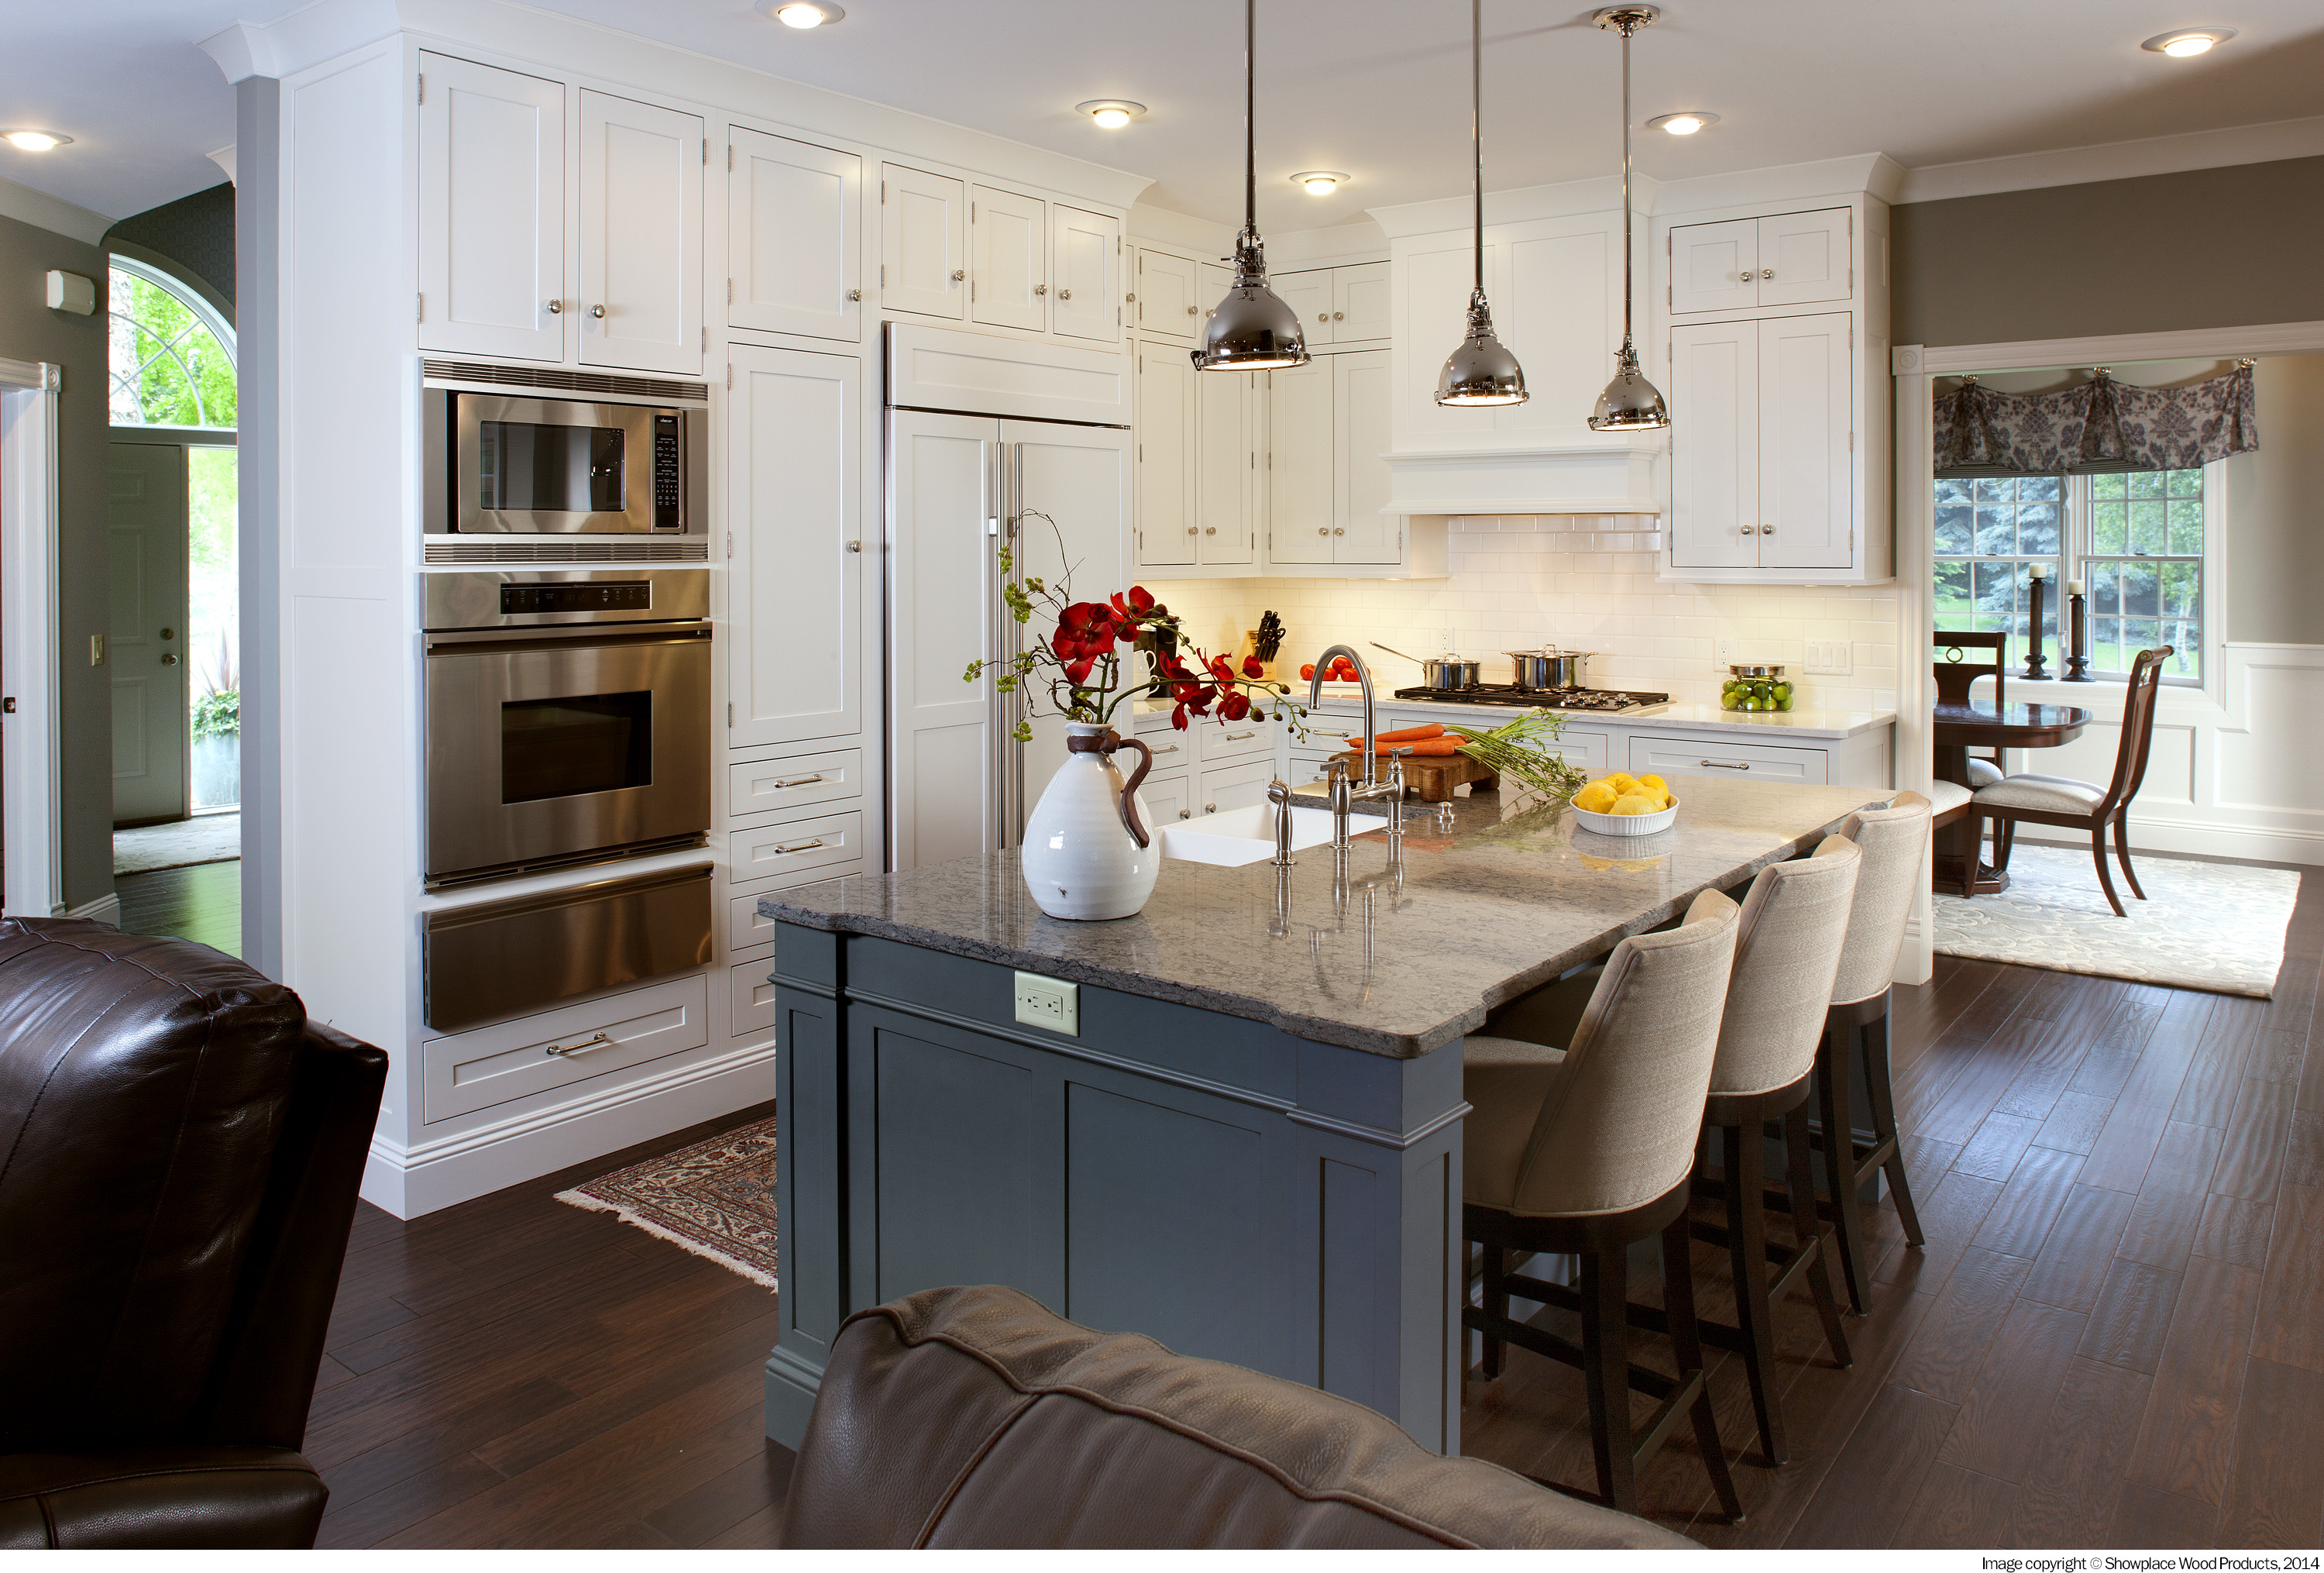 Benefits Of Kitchen Islands (4)